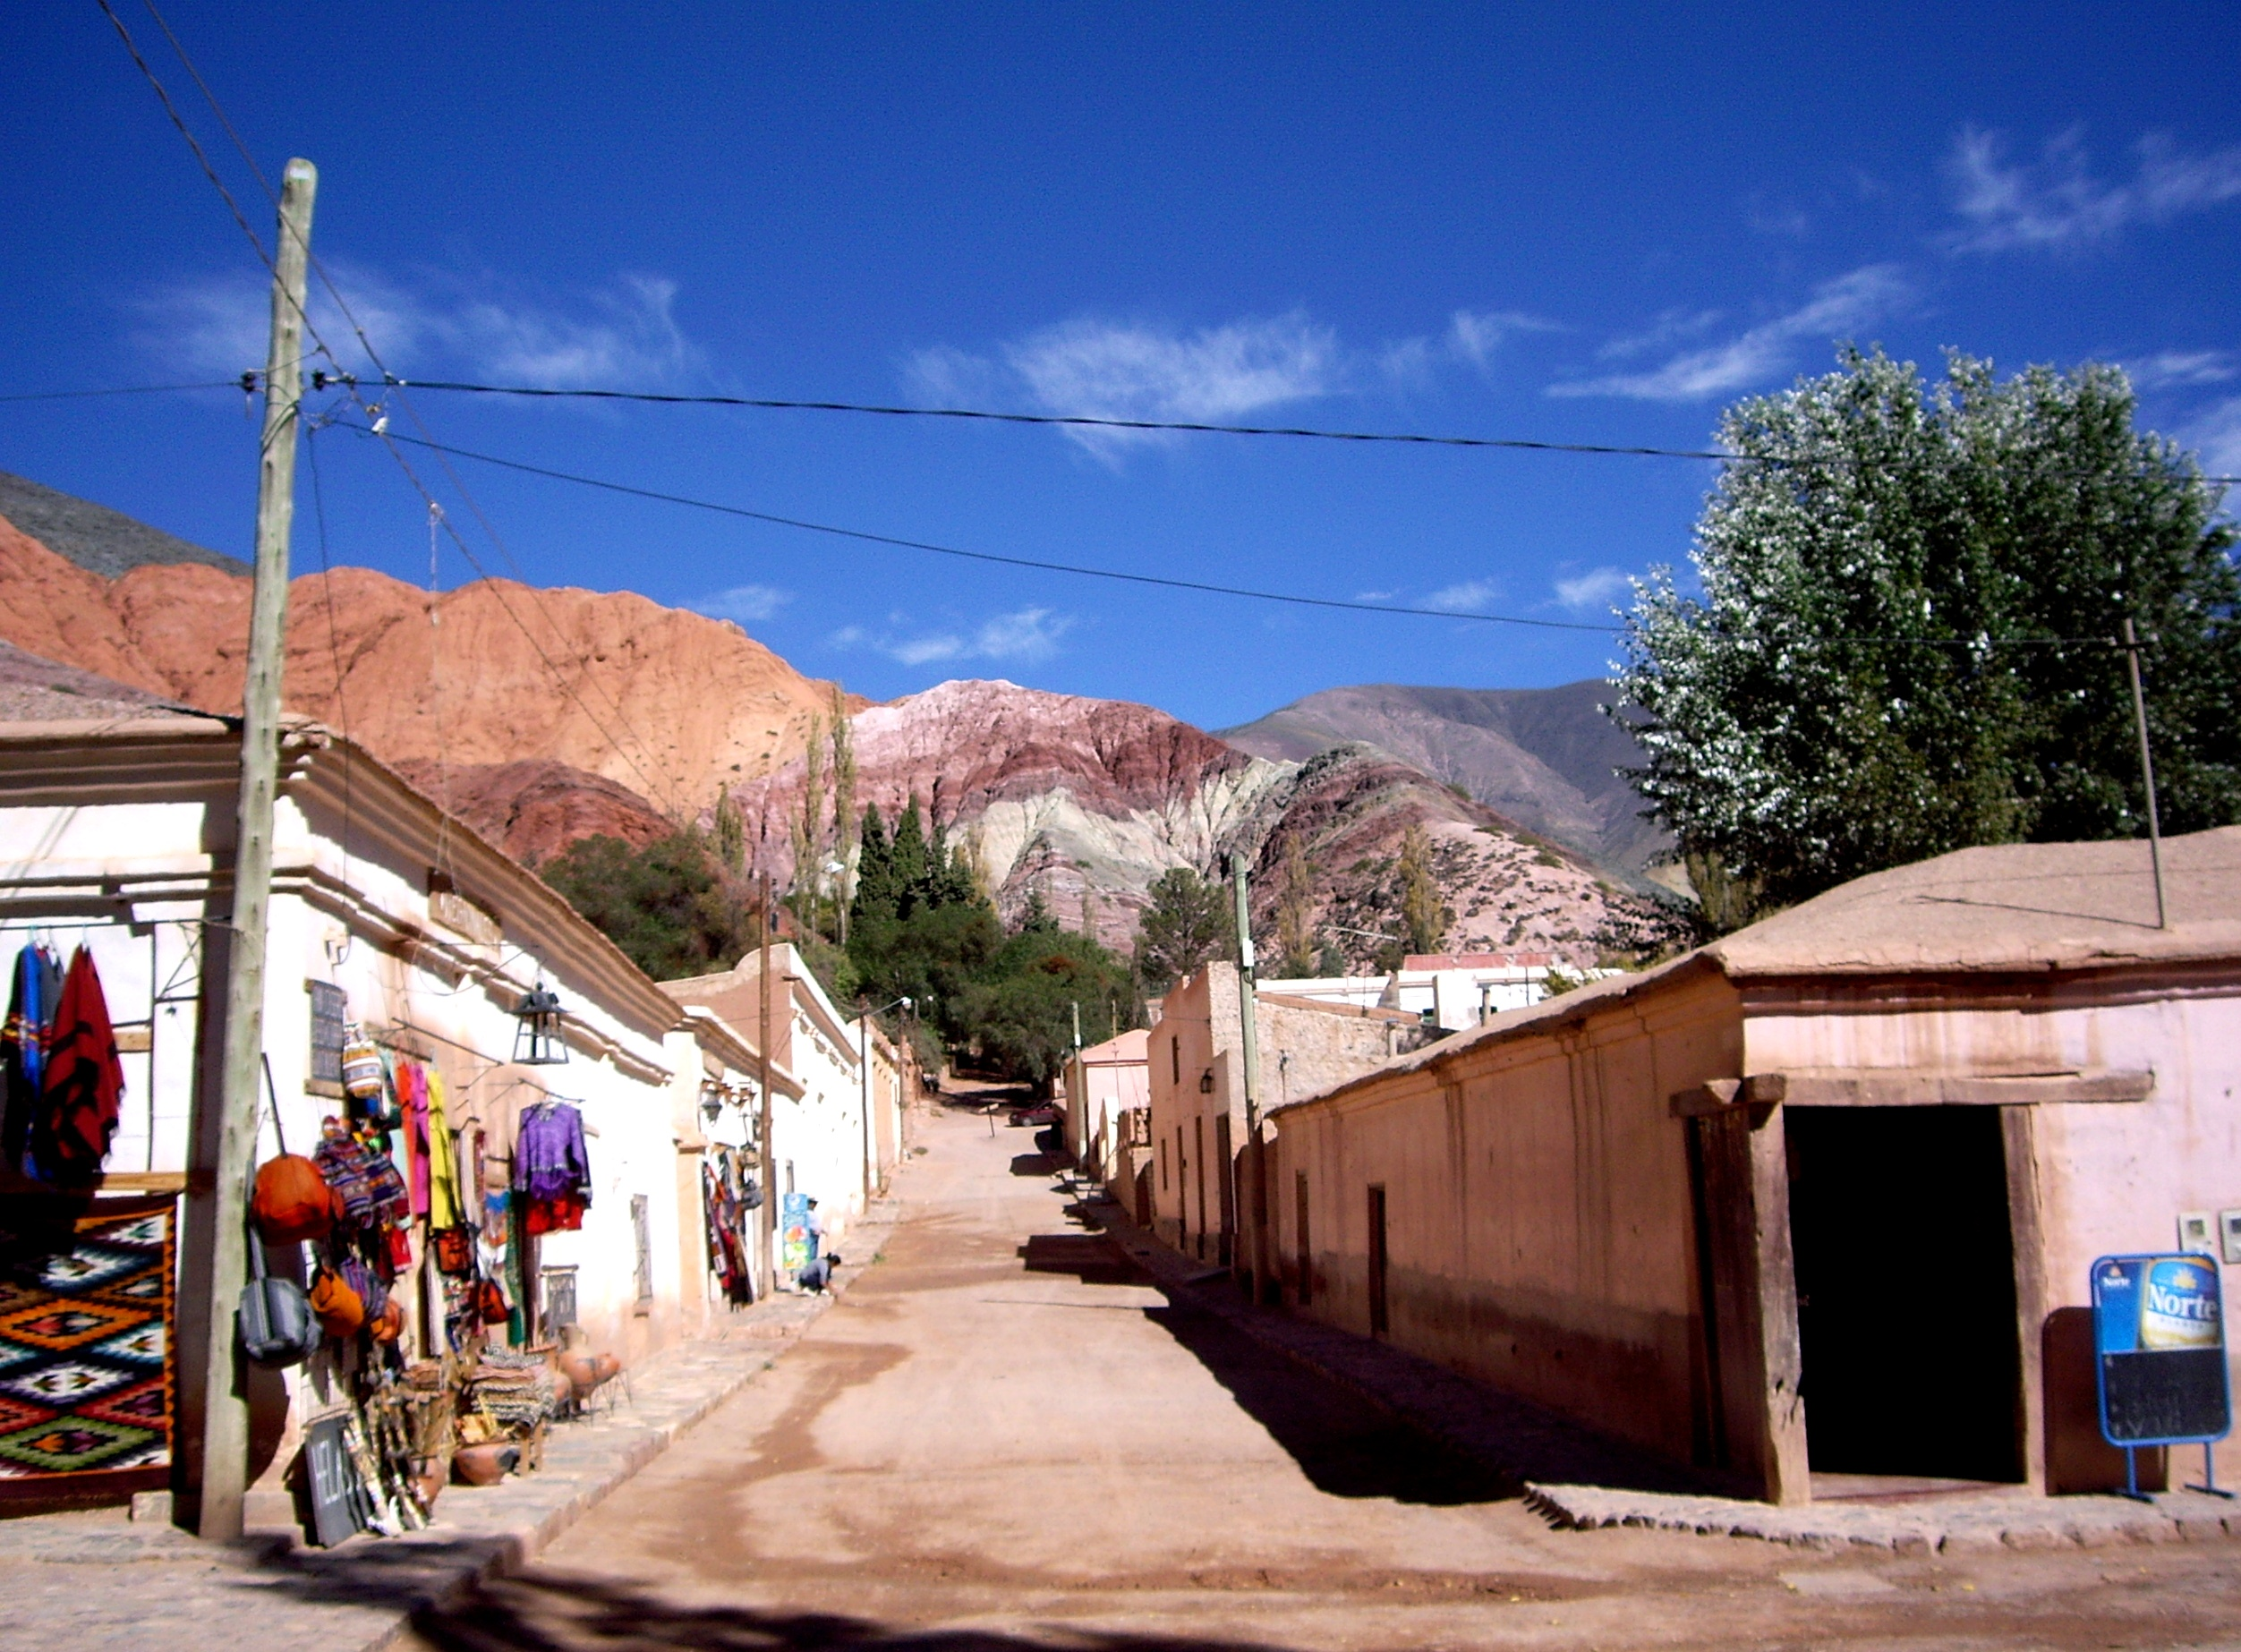 Street view from indigenous town of Purmamarca, Argentina, framed by Cerro de Siete Colores